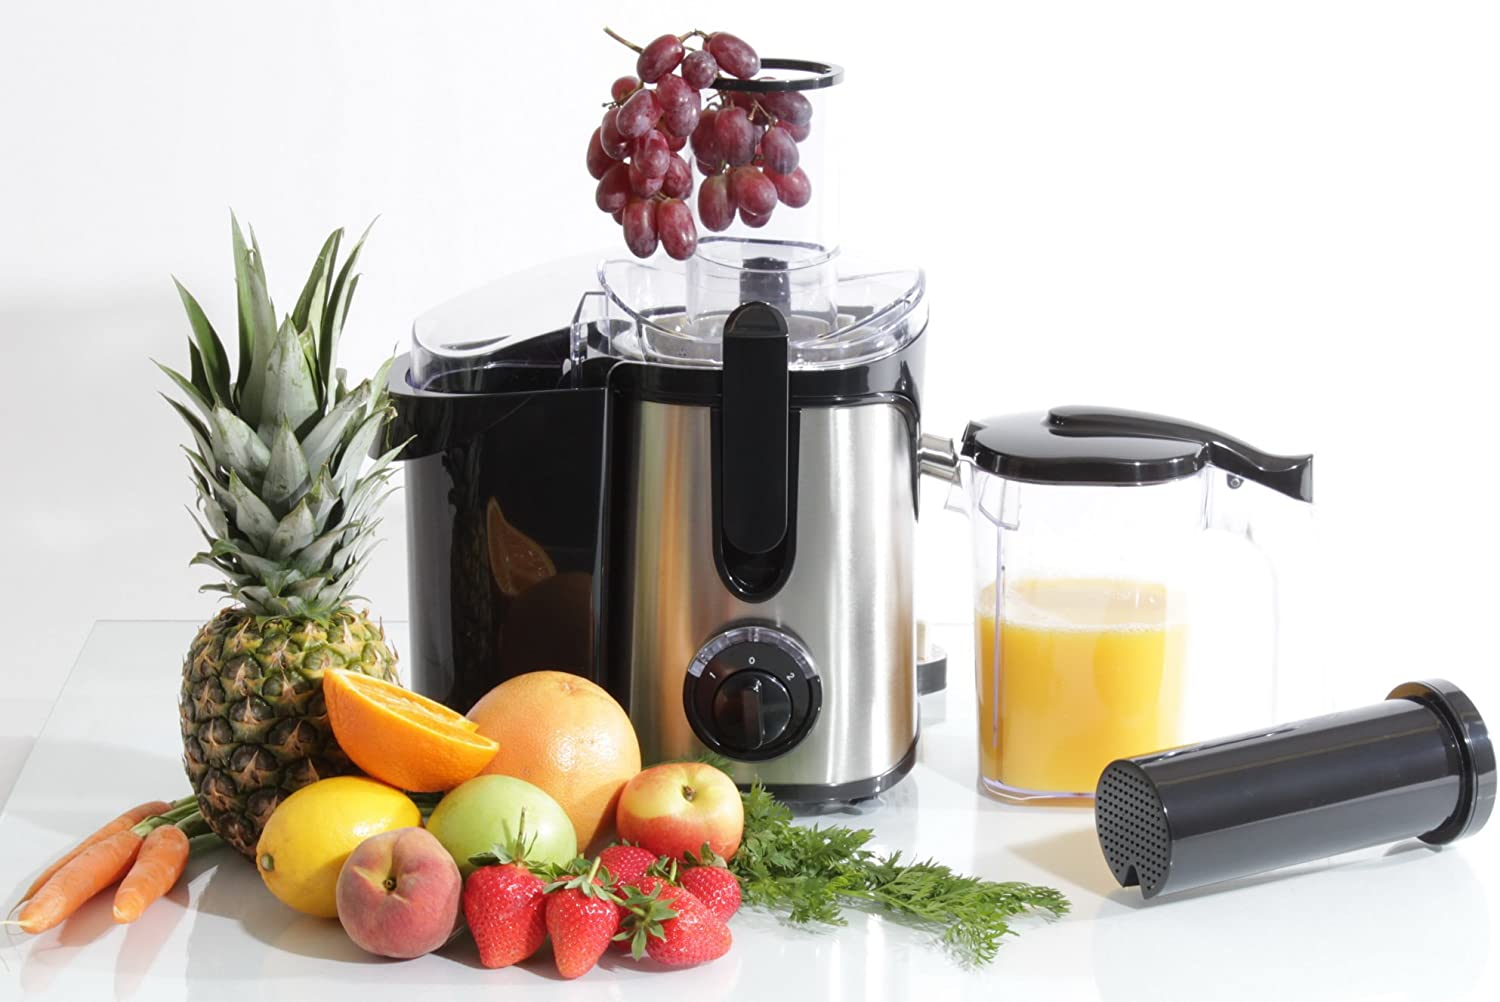 800W Stainless Steel Fruit Juicer 2l